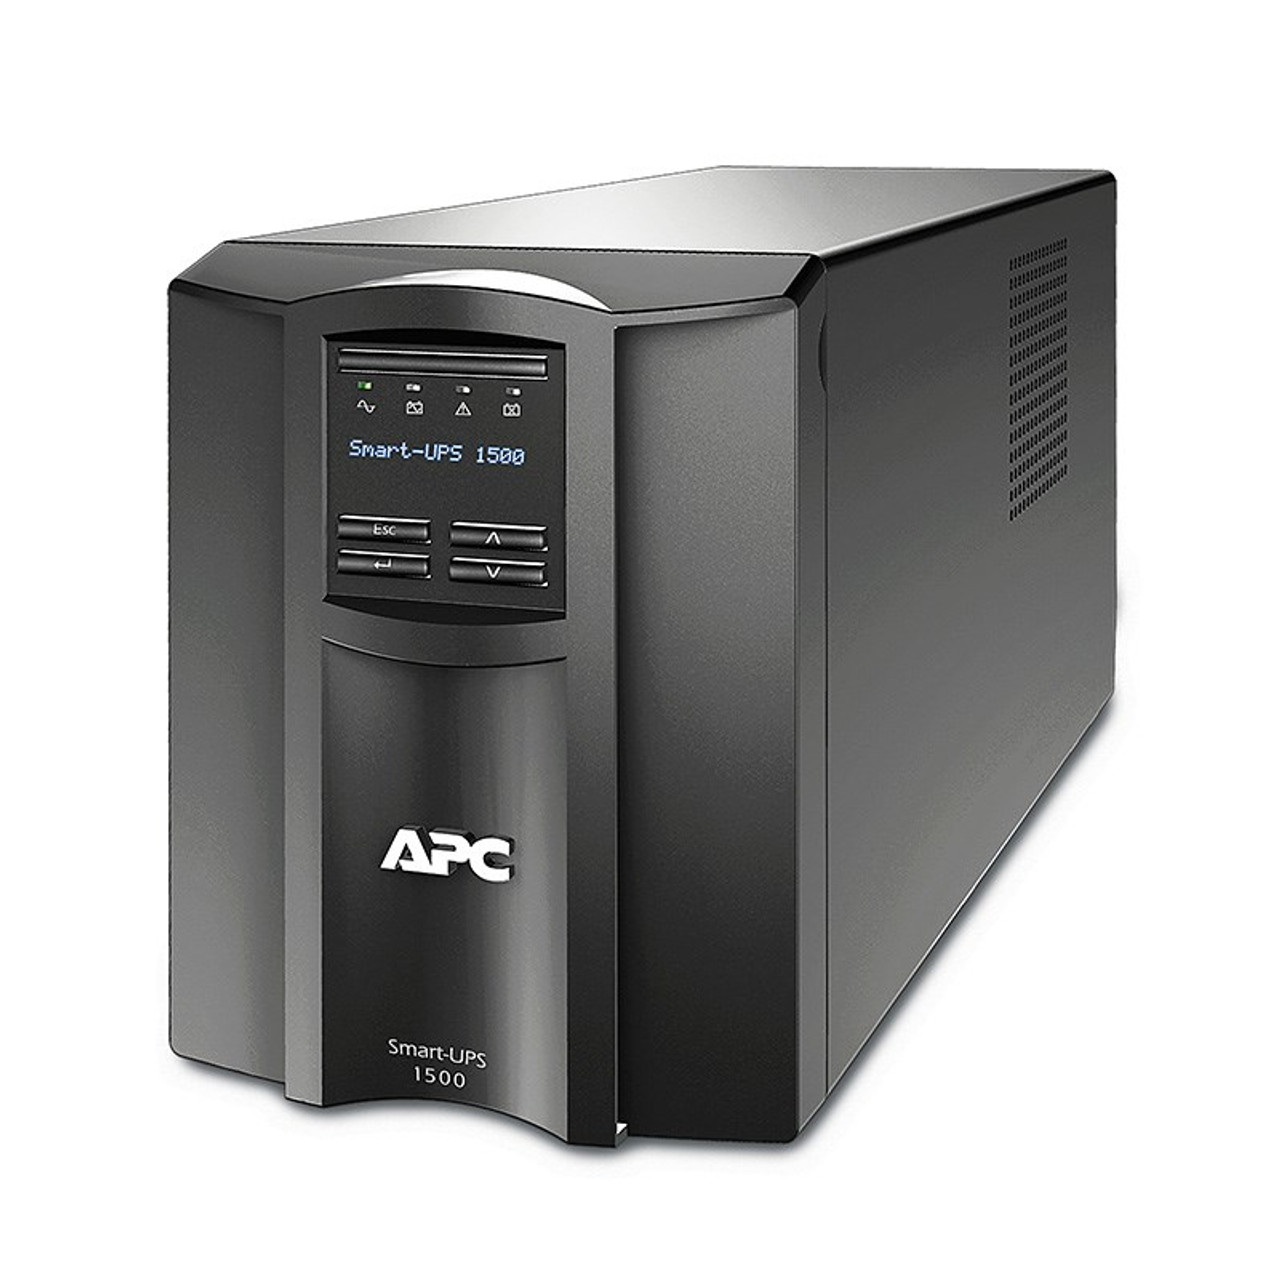 Image for APC SMT1500IC Smart-UPS 1500VA LCD 230V with SmartConnect CX Computer Superstore